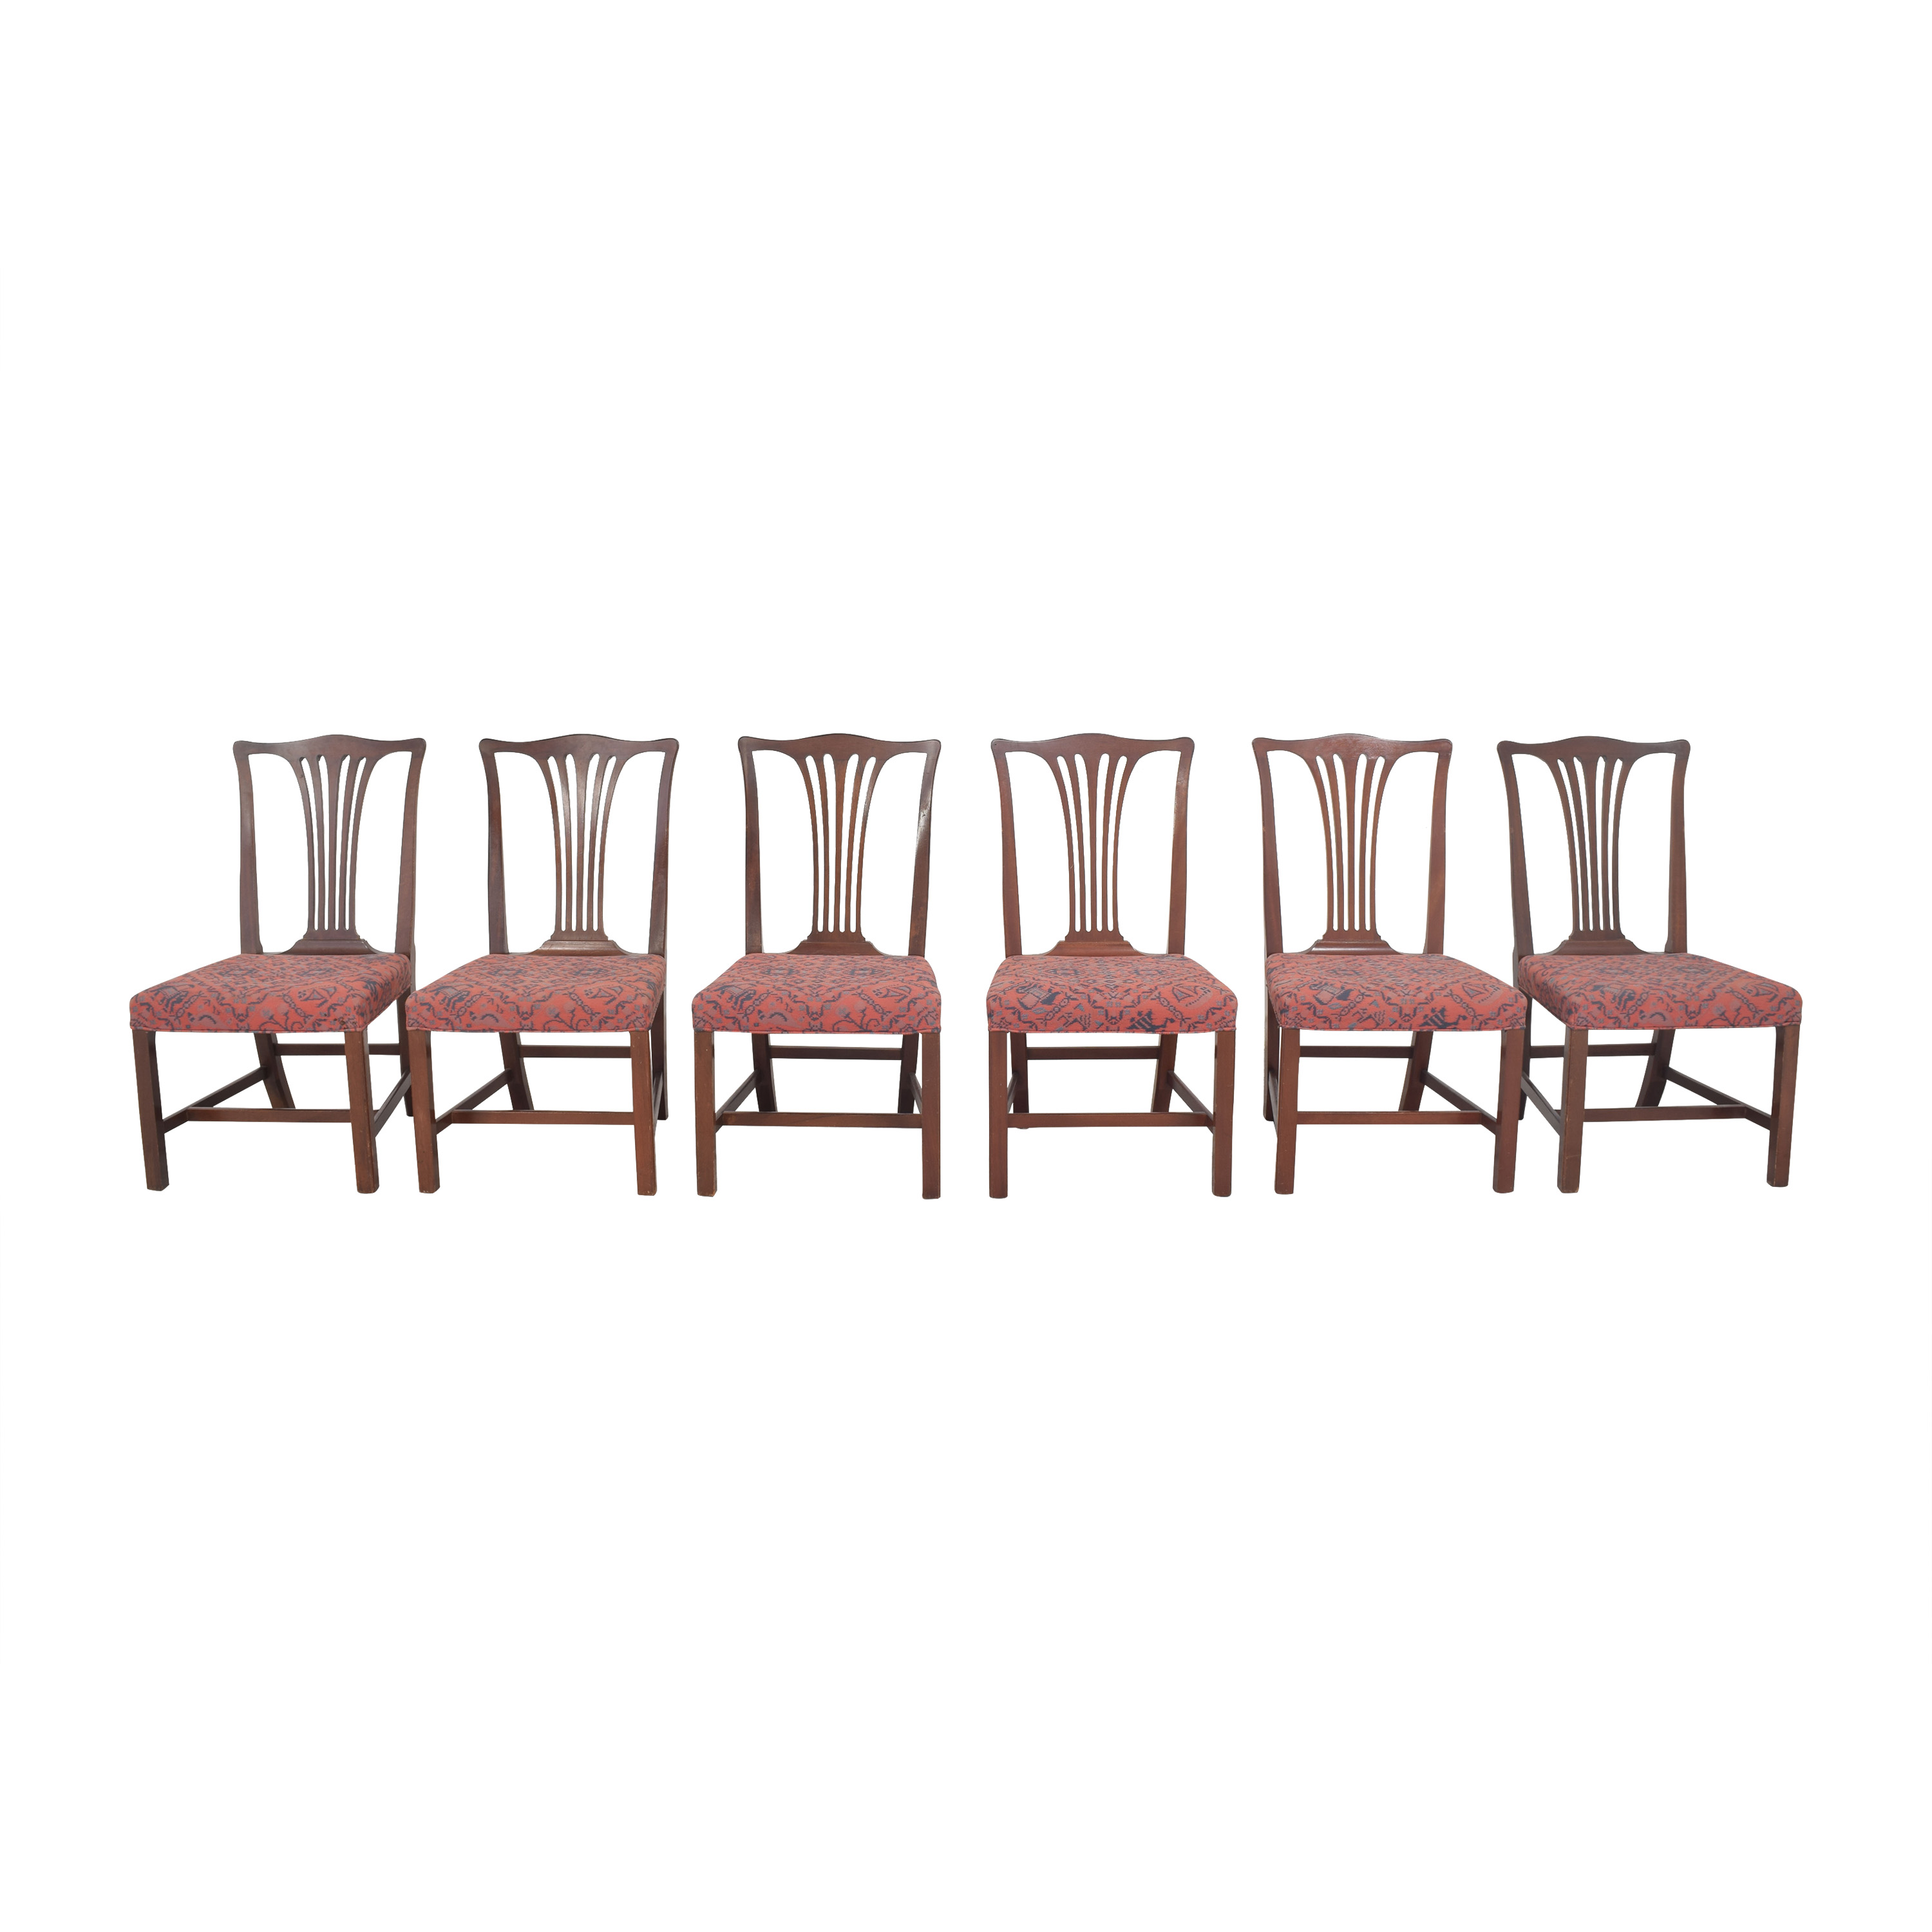 buy Wood & Hogan Country Chippendale Dining Side Chairs Wood & Hogan Dining Chairs